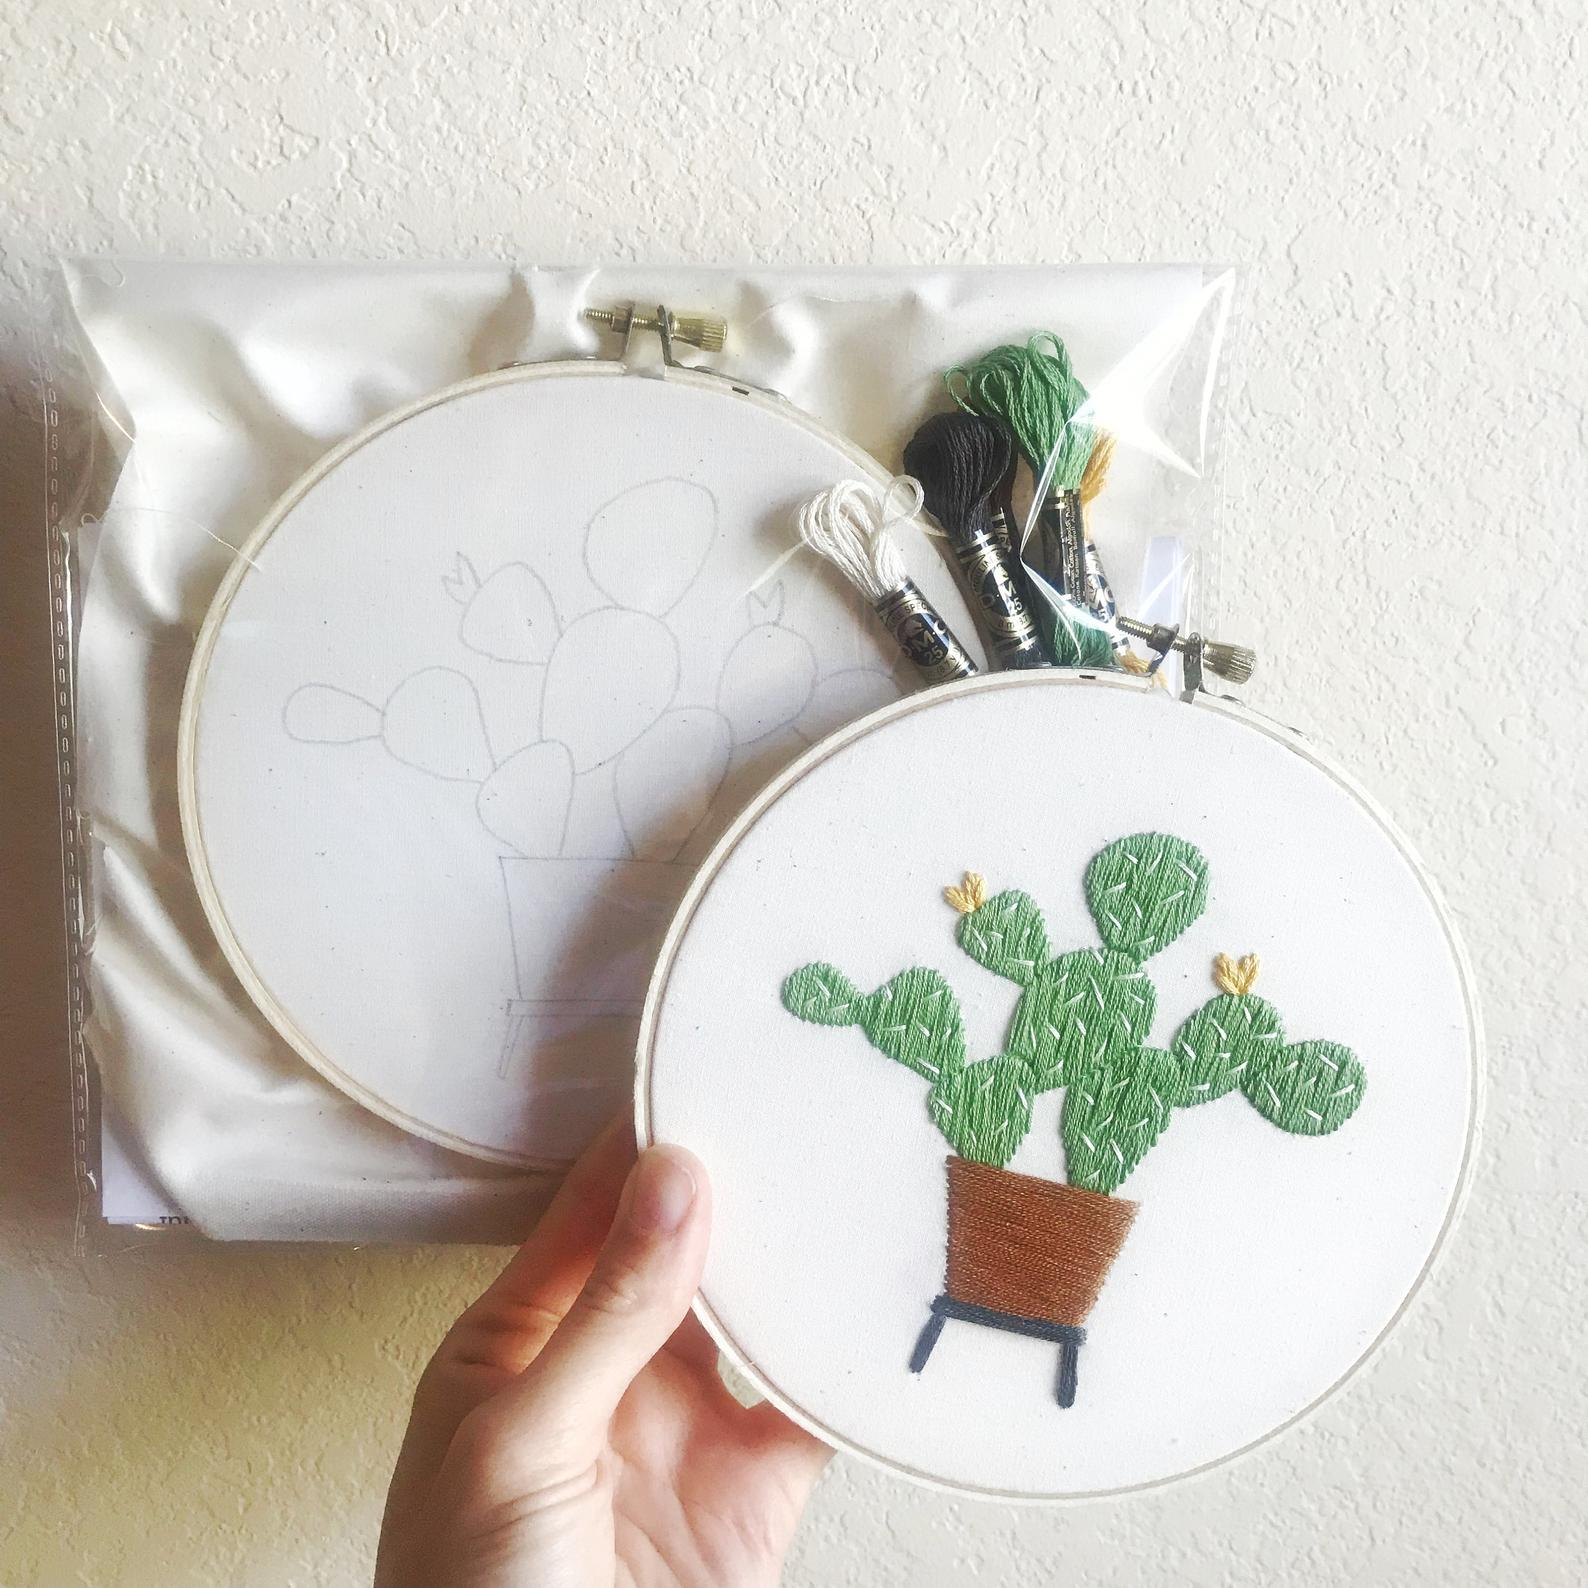 Potted Cactus Embroidery Kit - DIY Embroidery Craft